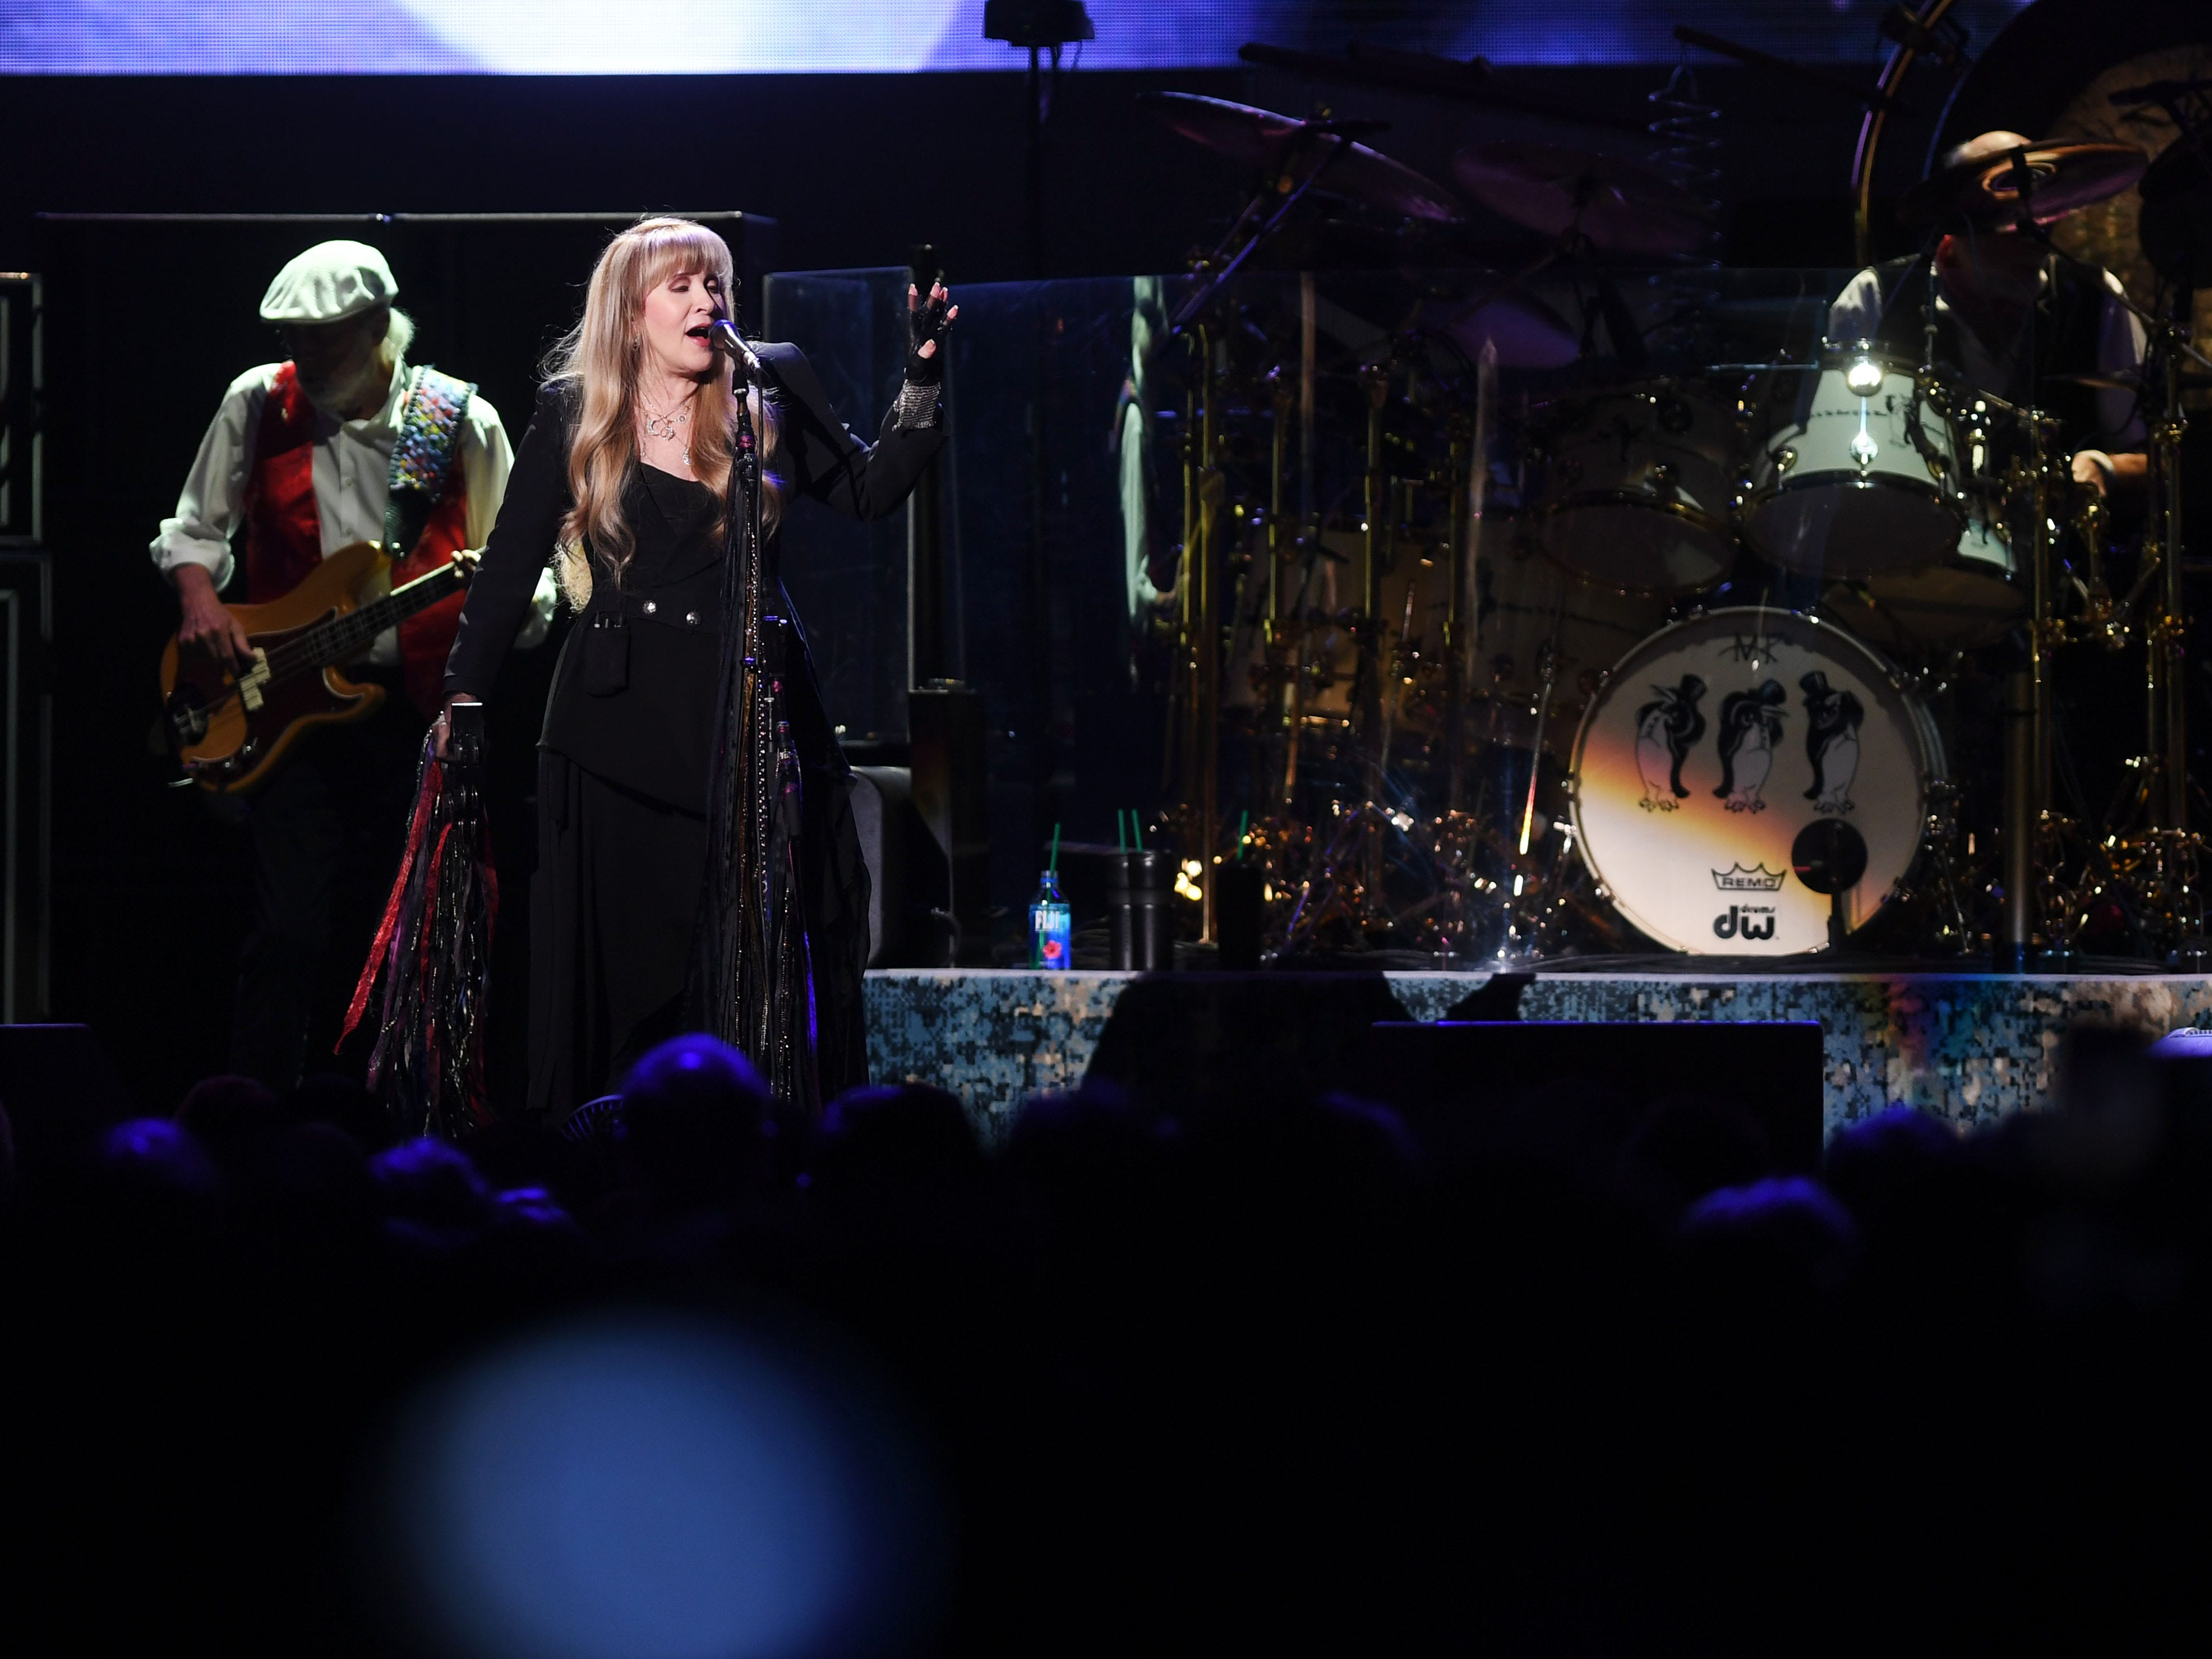 Fleetwood Mac performs at the Denny Sanford Premier Center Saturday, Feb. 2, in Sioux Falls. The new lineup included Mick Fleetwood, John McVie, Stevie Nicks, Christine McVie, Mike Campbell and Neil Finn.